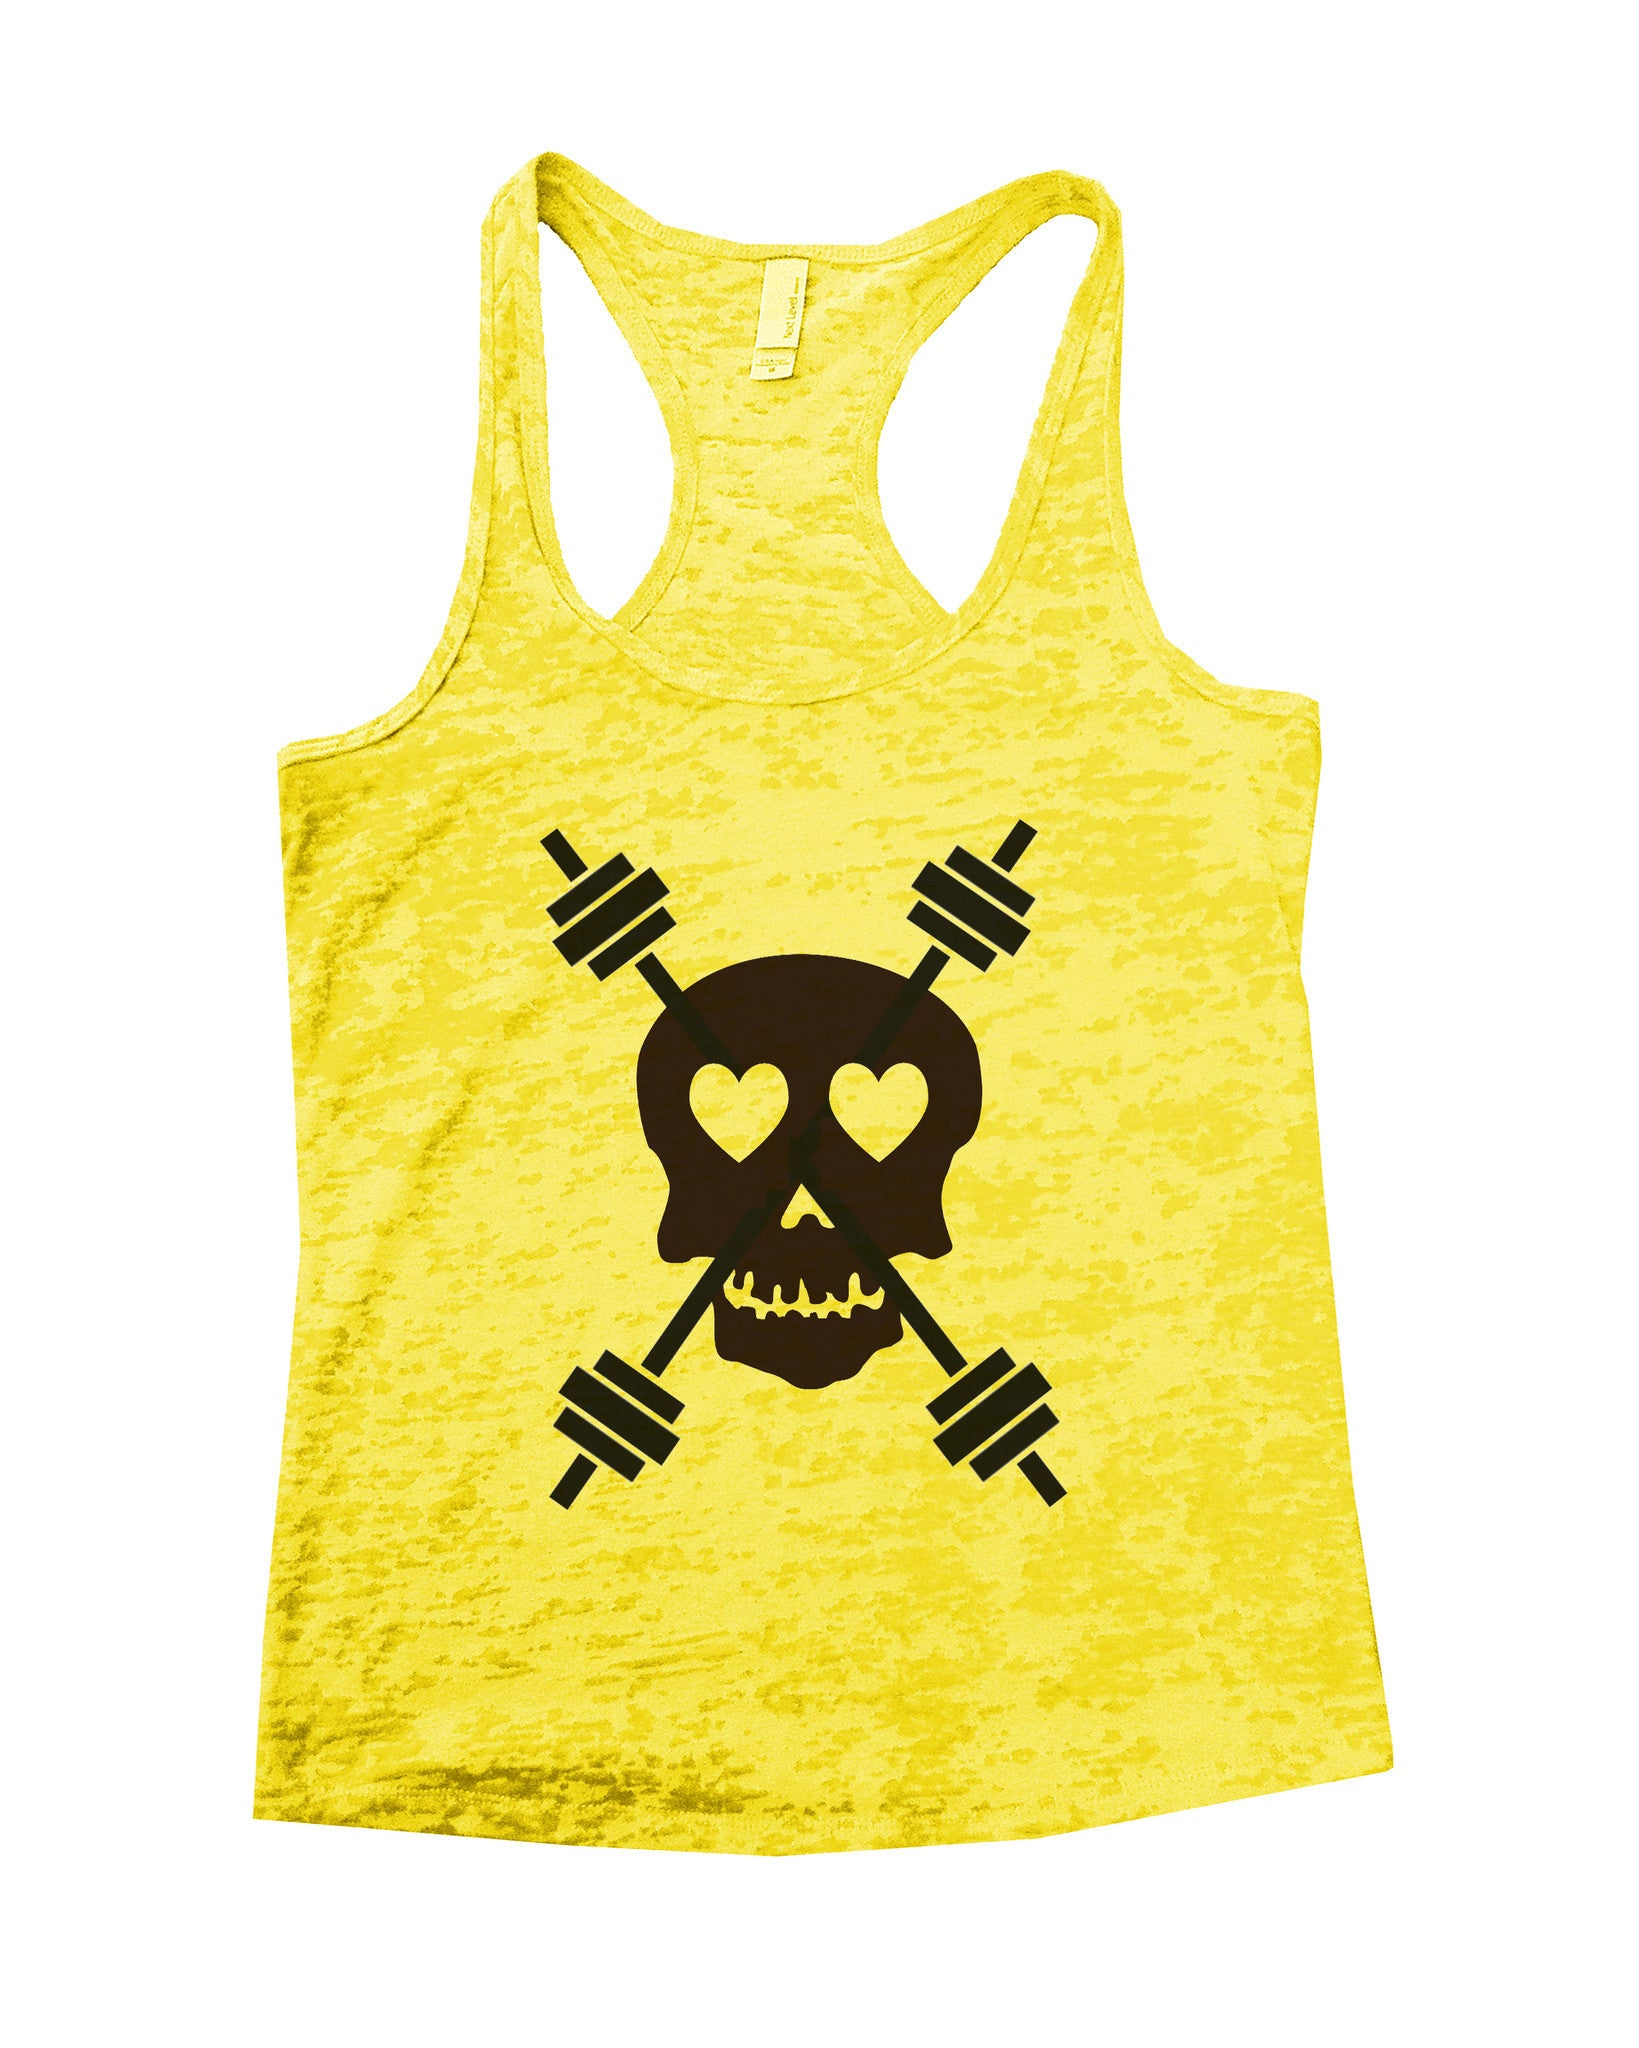 Skull And Weight Bars Burnout Tank Top By BurnoutTankTops.com - 653 - Funny Shirts Tank Tops Burnouts and Triblends  - 6